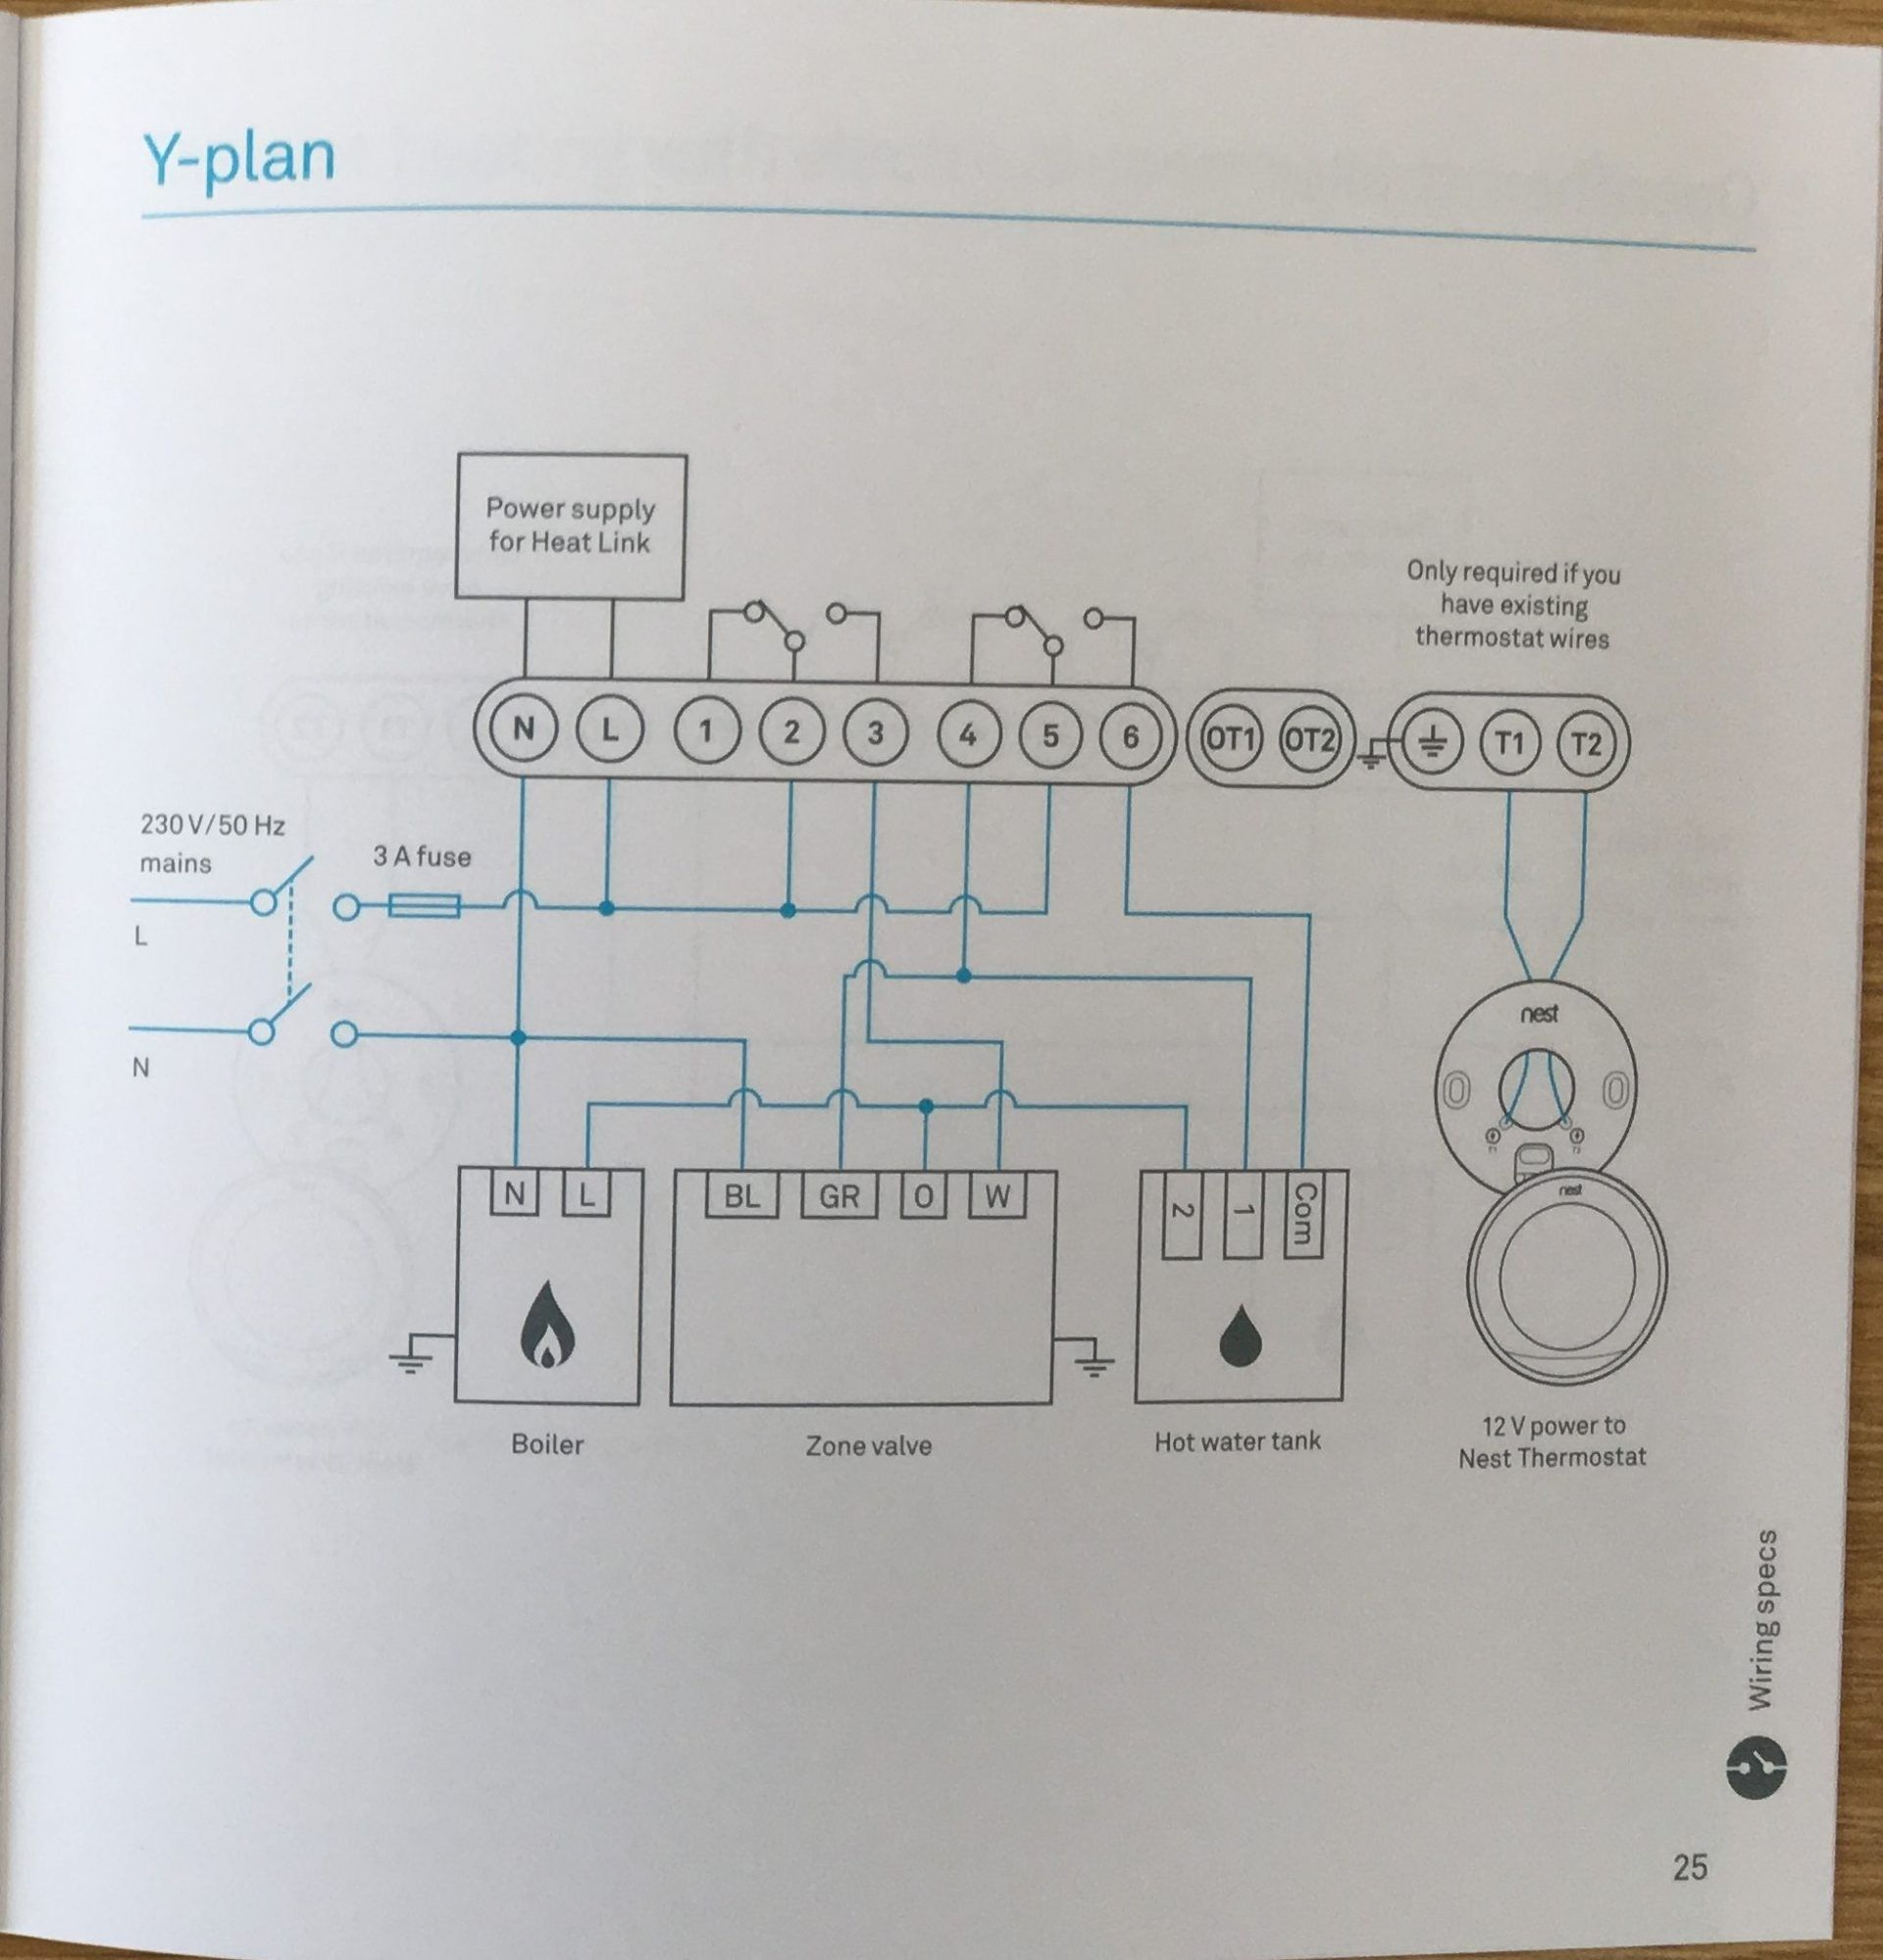 hight resolution of luxury wiring diagram for a y plan heating system diagrams digramssample diagramimages wiringdiagramsample